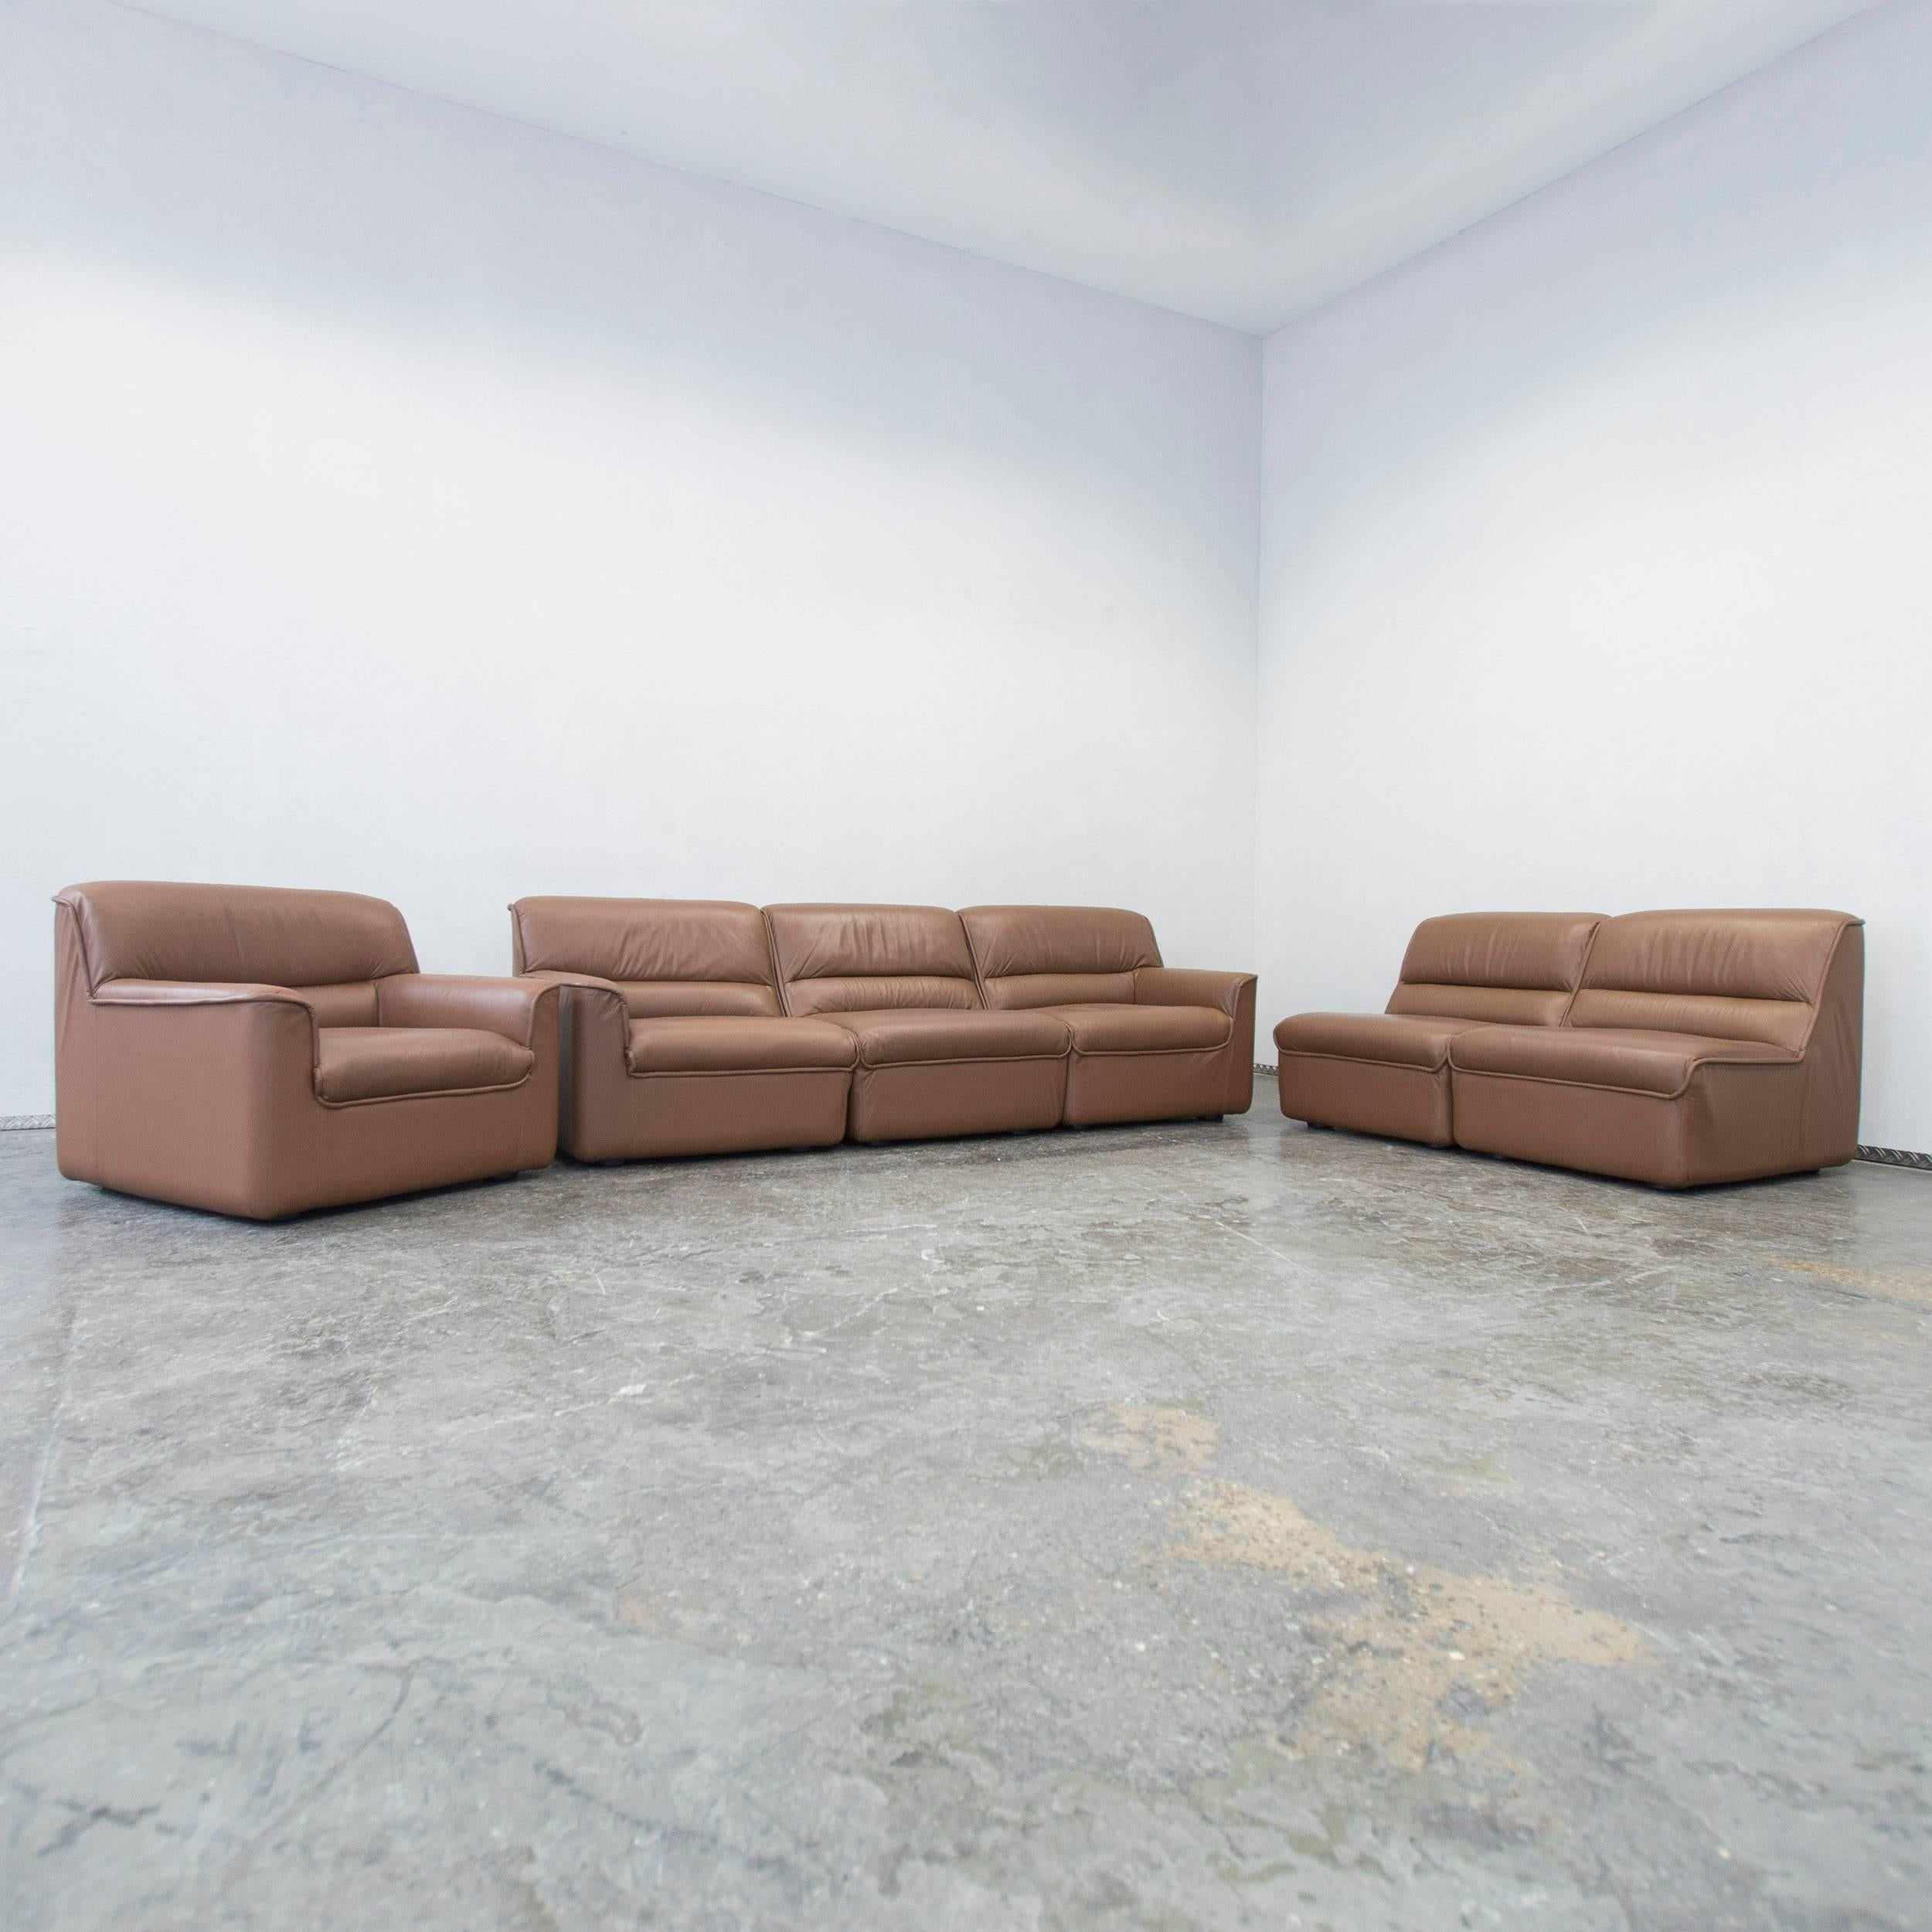 COR Designer Leather Modular Sofa Set Brown Couch Vintage Retro At 1stdibs